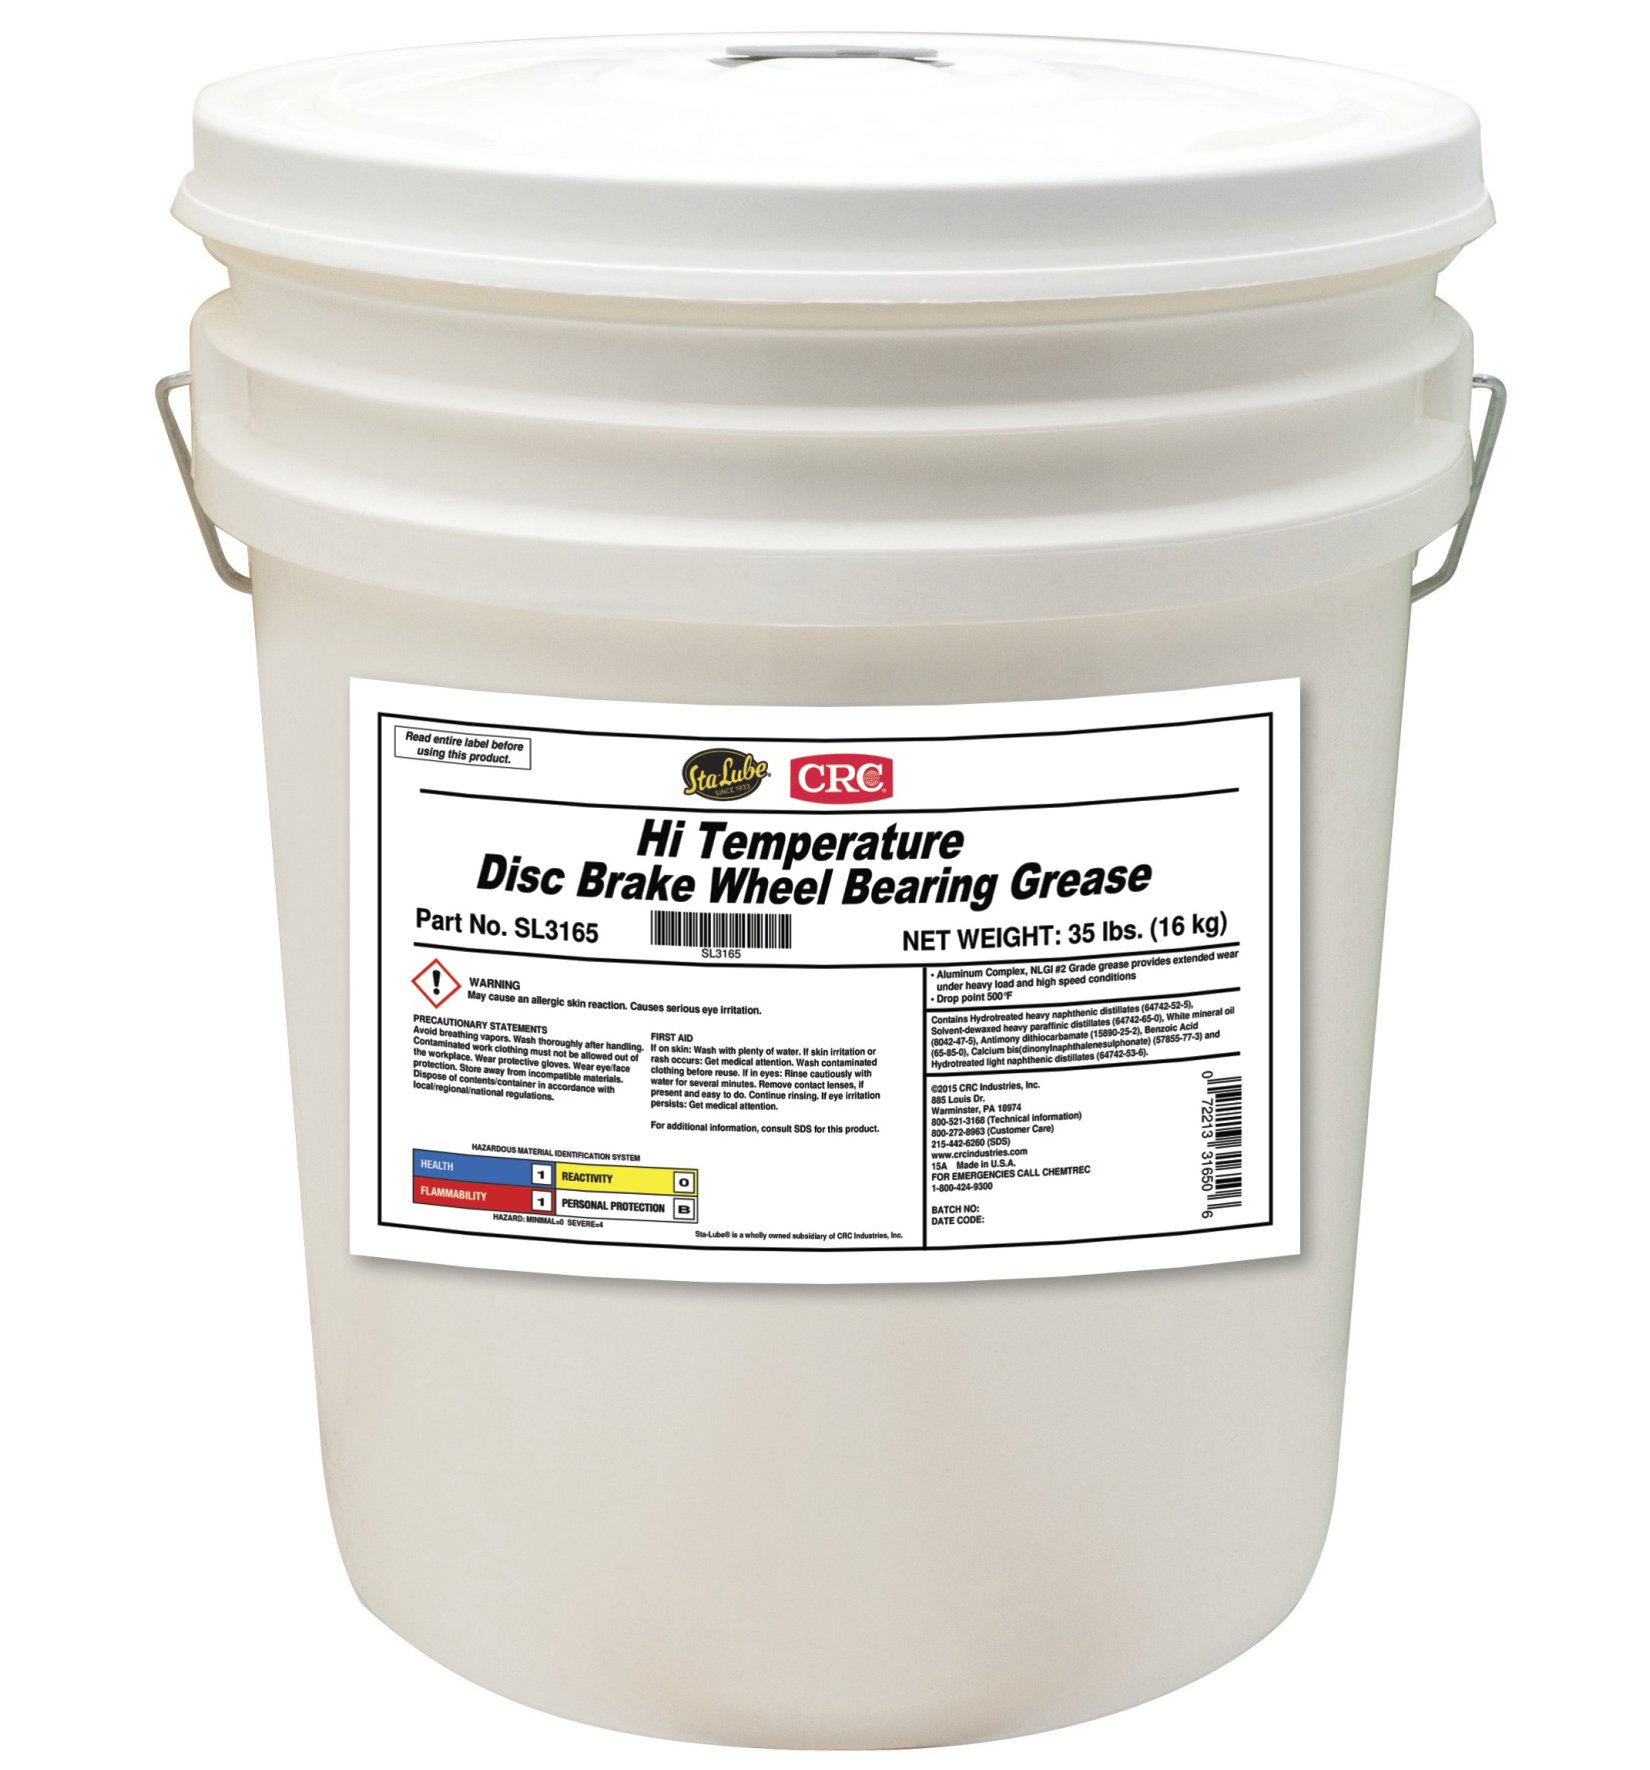 Sta-Lube Hi Temperature Disc Brake Wheel Bearing Grease, 35 Lbs by CRC